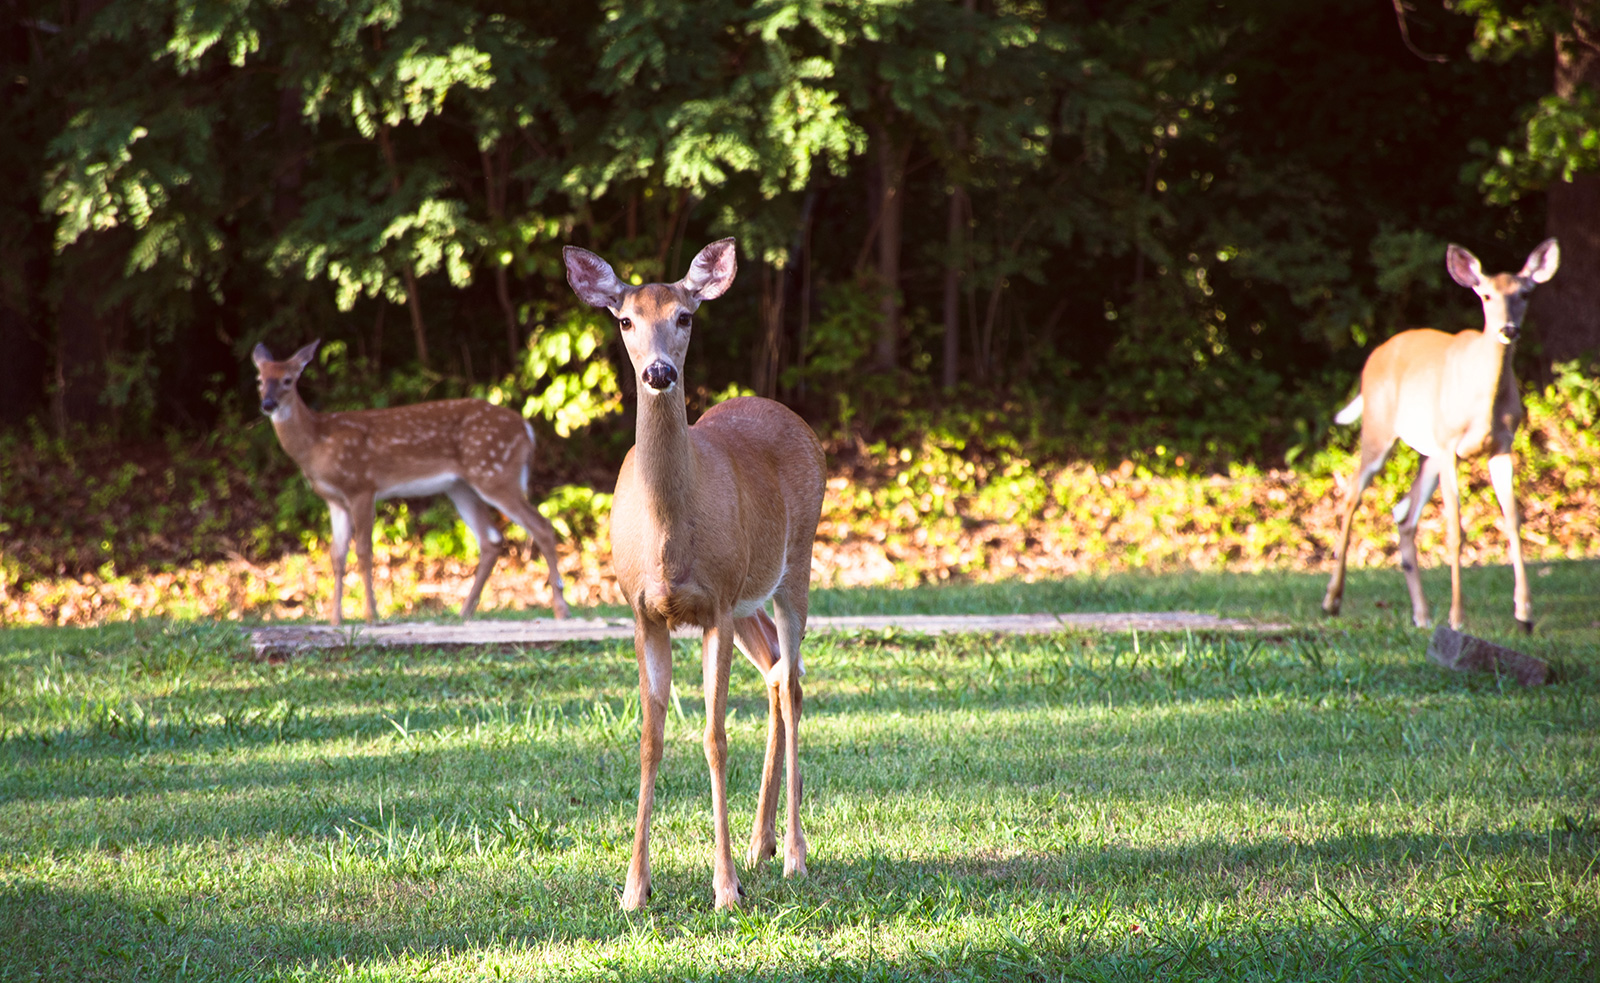 They might appear doe-eyed and vulnerable, but deer have been caught on camera foraging in bird nests, and even going after songbirds on the ground. Bambi is a predator. Photo by John M. / Wikimedia.